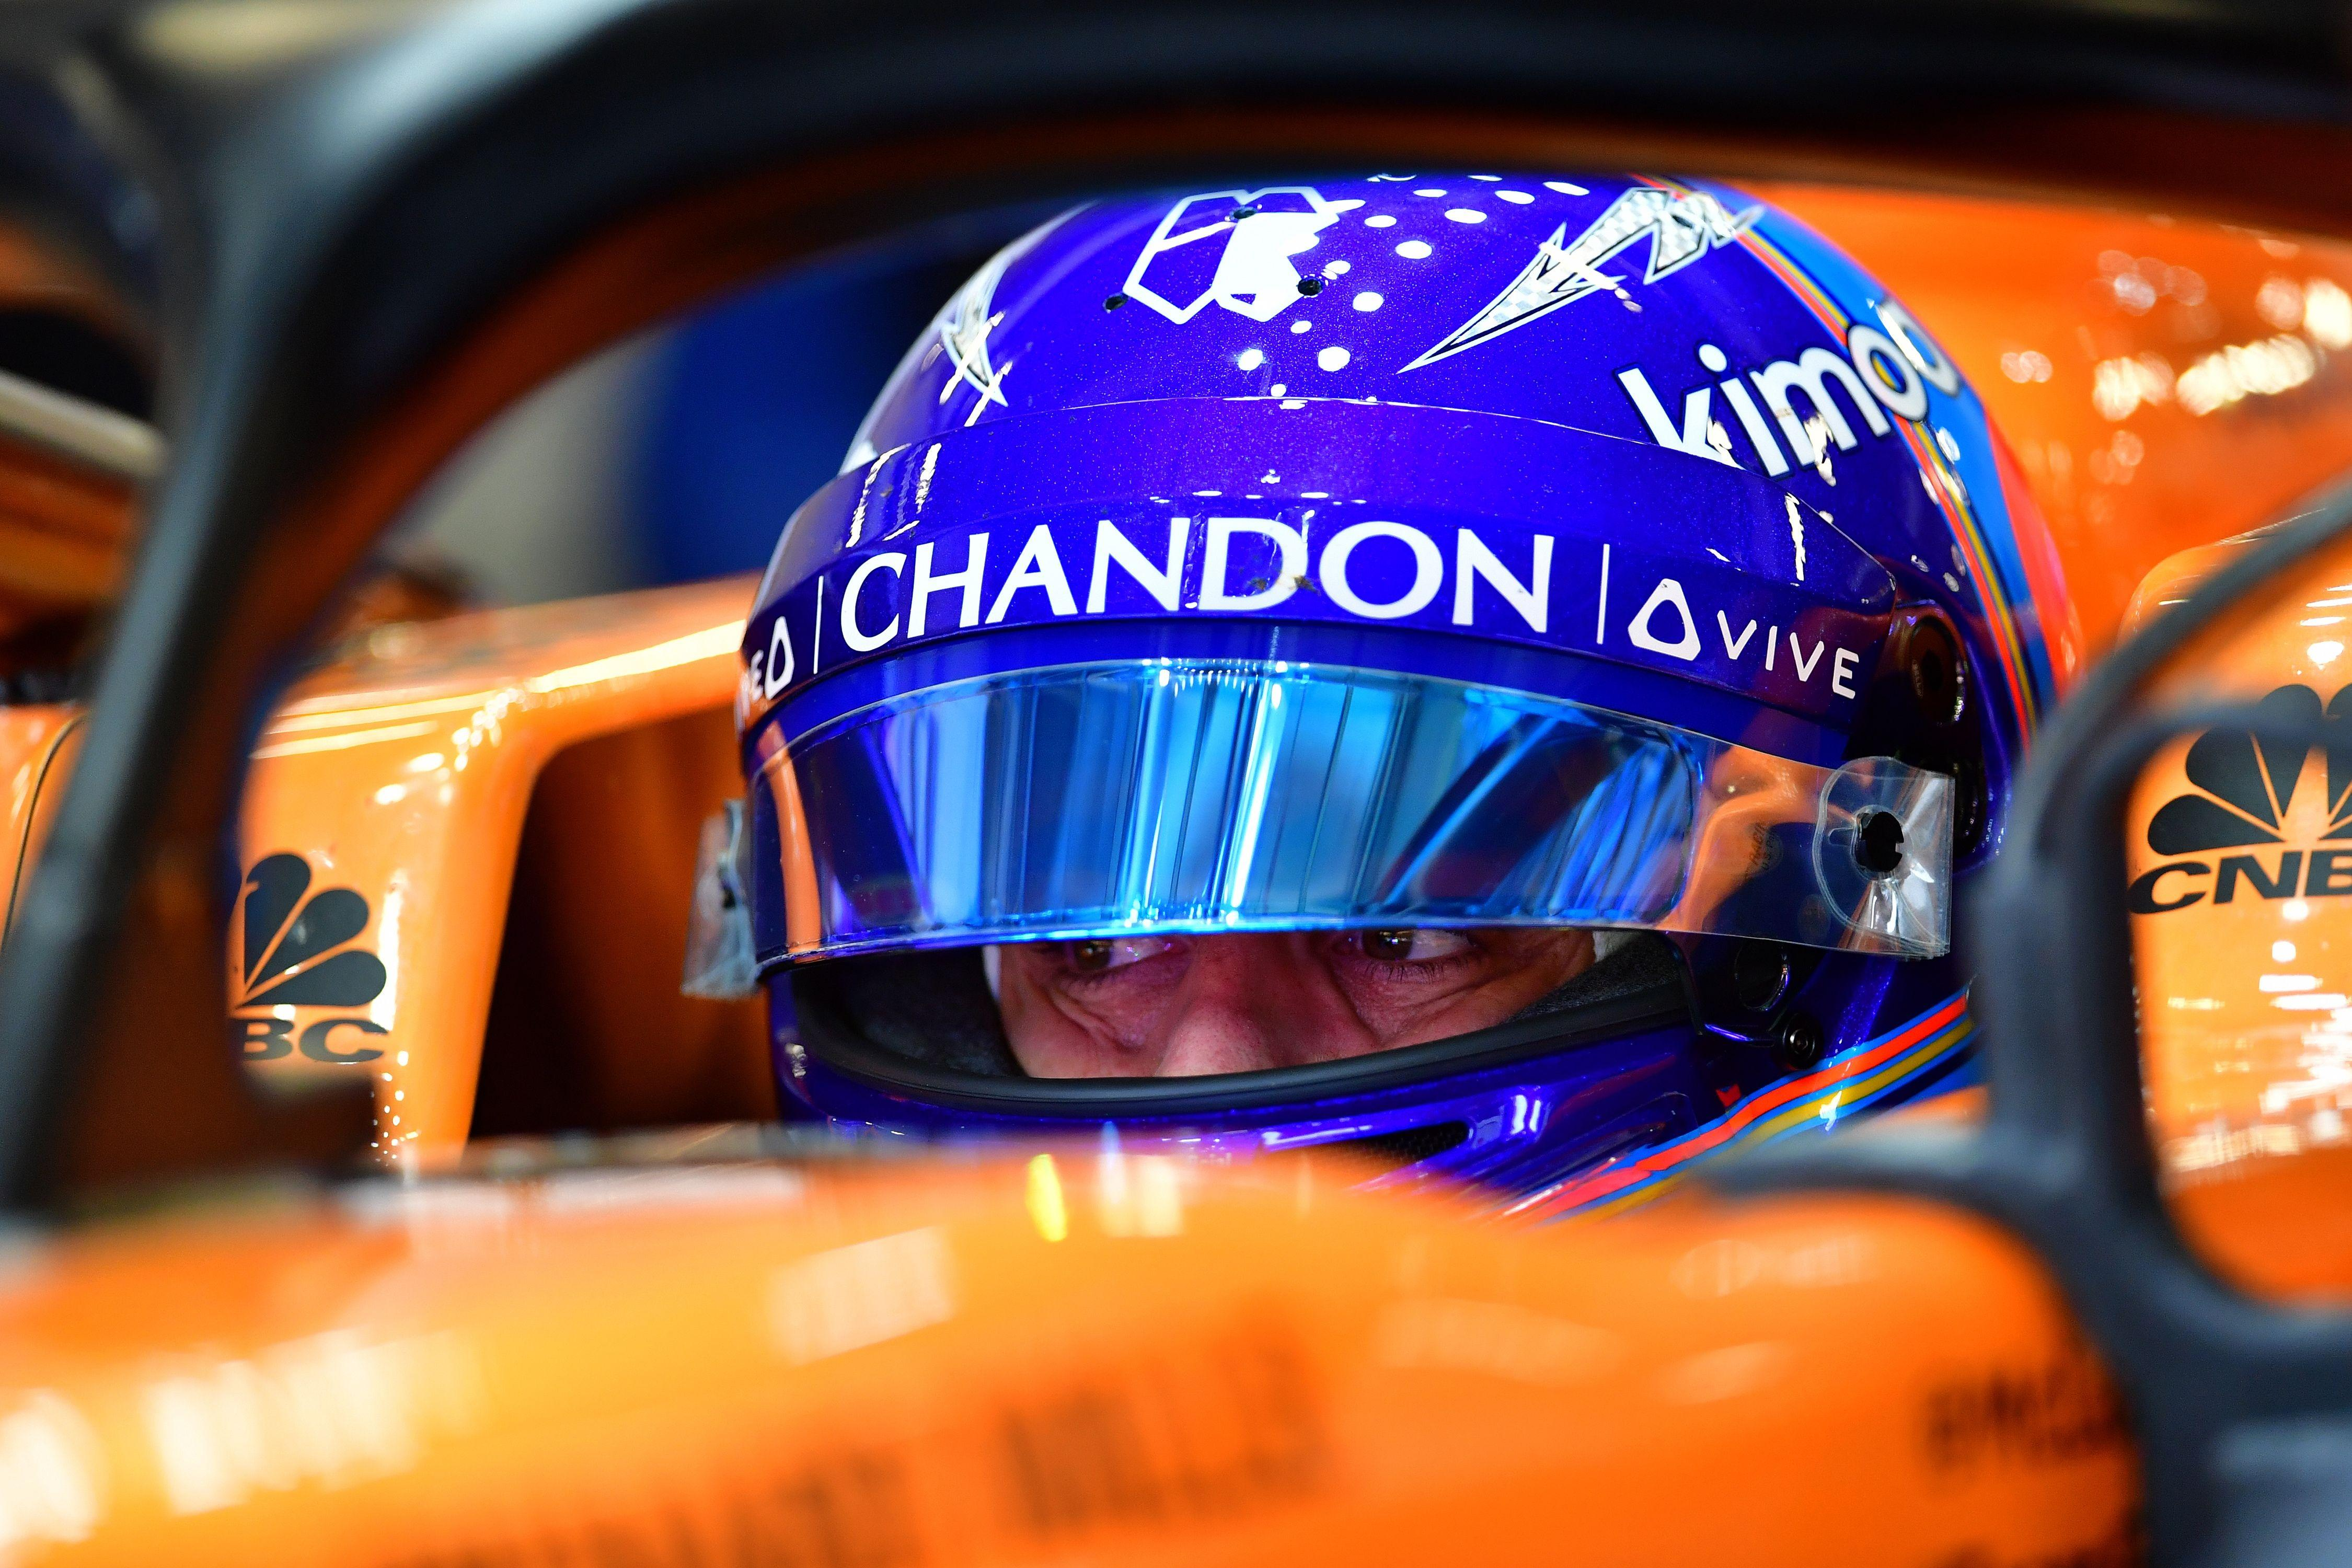 Alonso has demanded an apology from Christian Horner